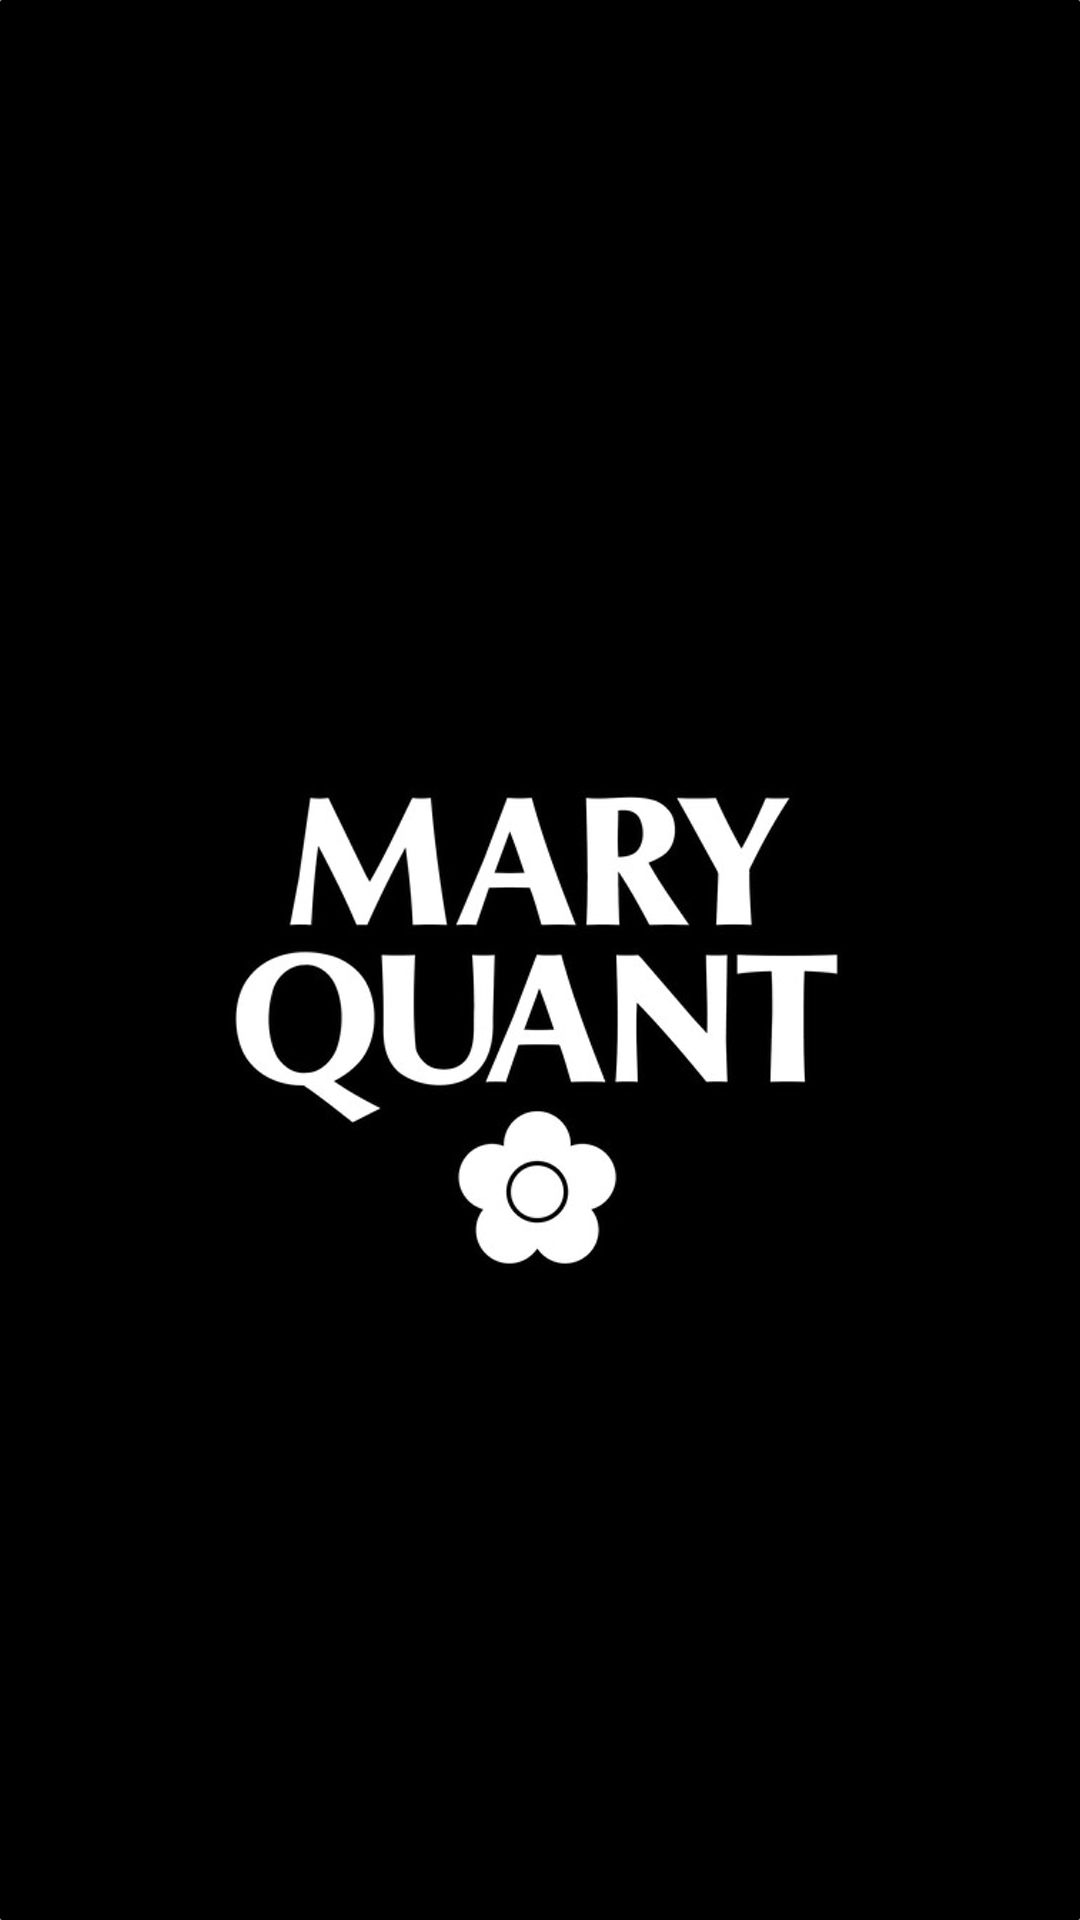 maryquant i01 - 20 MARY QUANT HQ Smartphone Wallpaper Collection